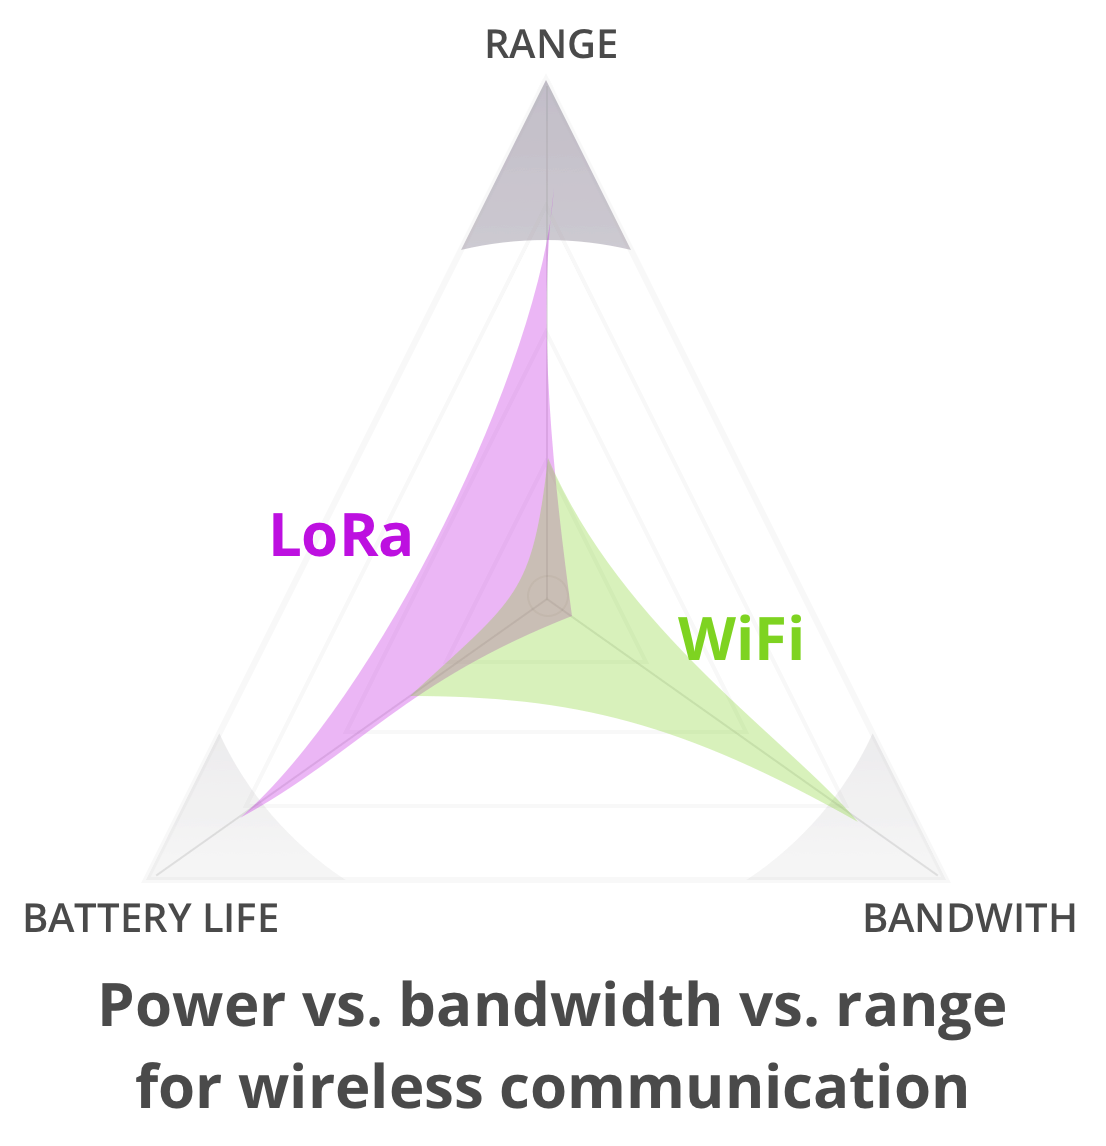 3 Differences between LoRa and WiFi - Samuel L Martinet - Medium